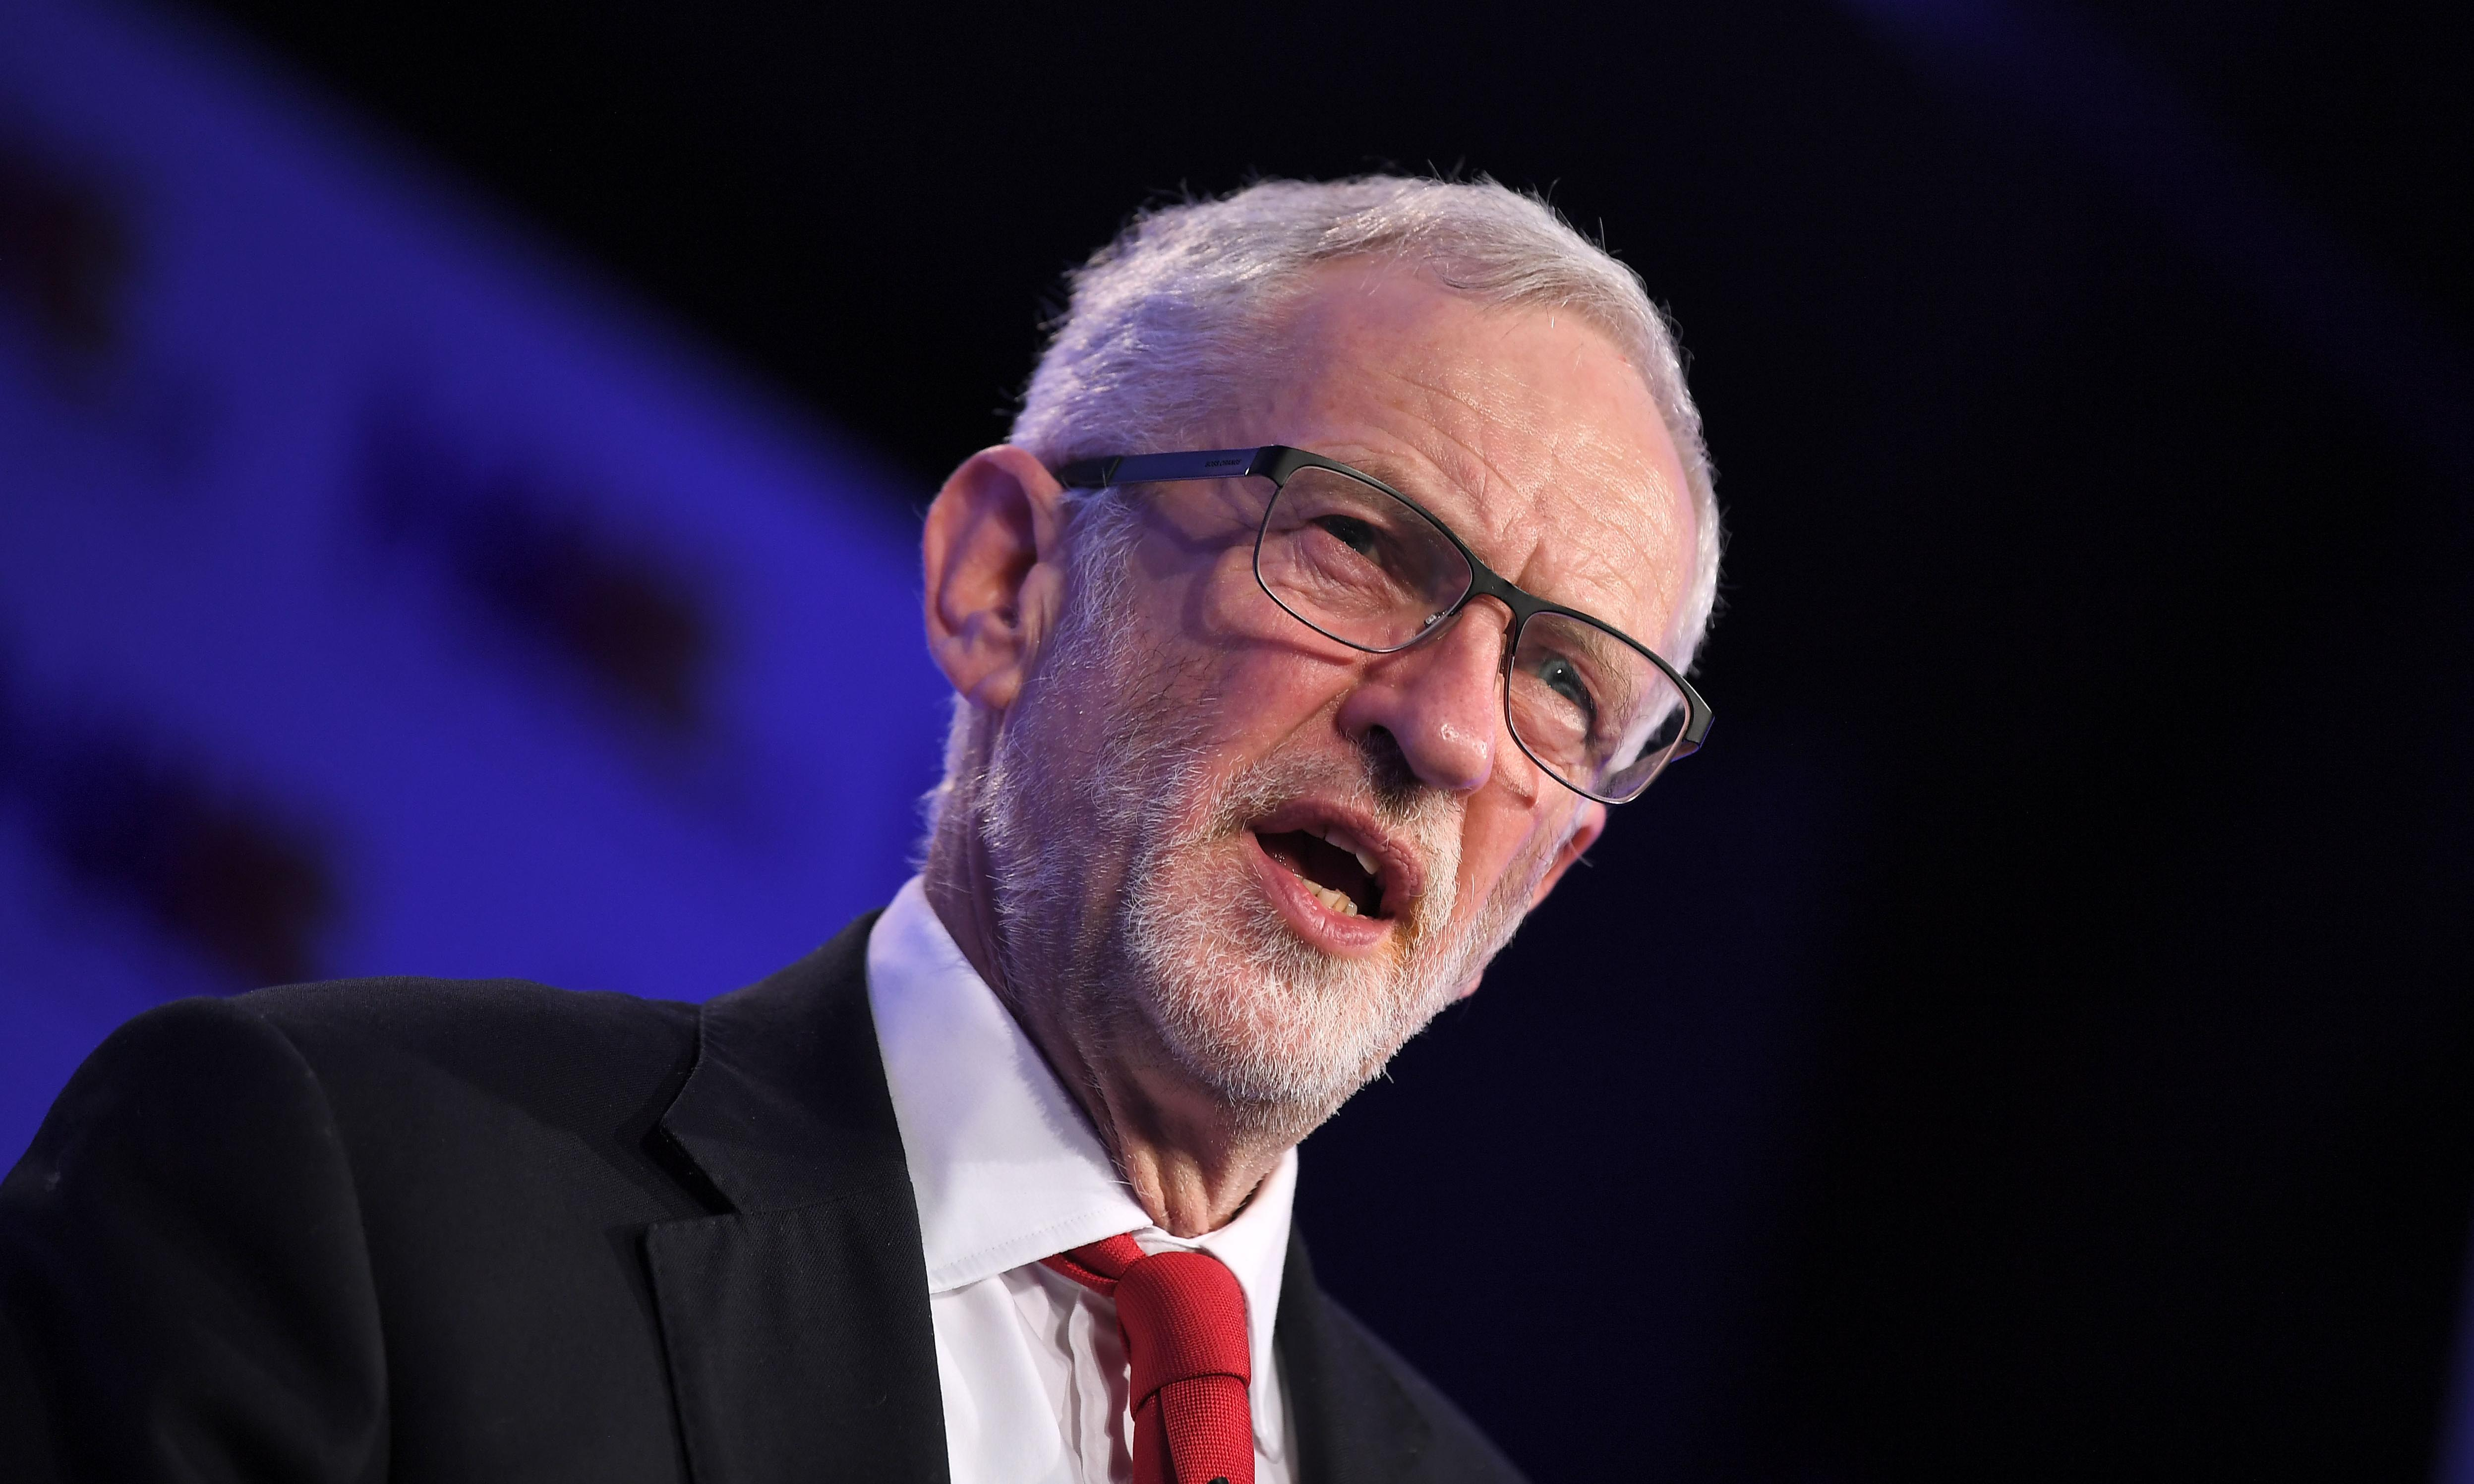 Poverty and climate more important than Brexit, says Corbyn